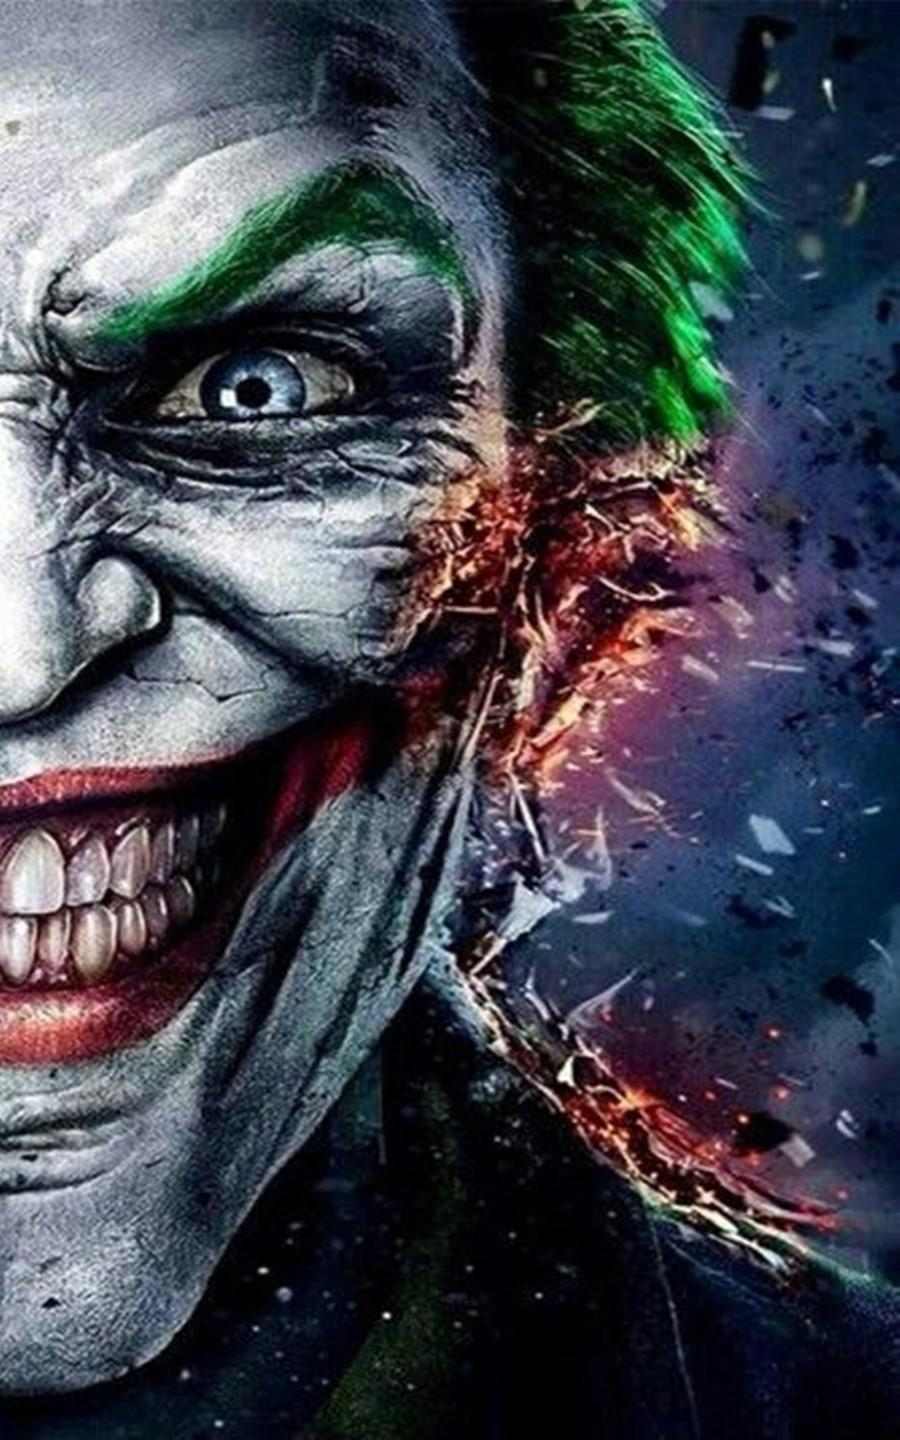 Joker Wallpapers HD for Android - APK Download